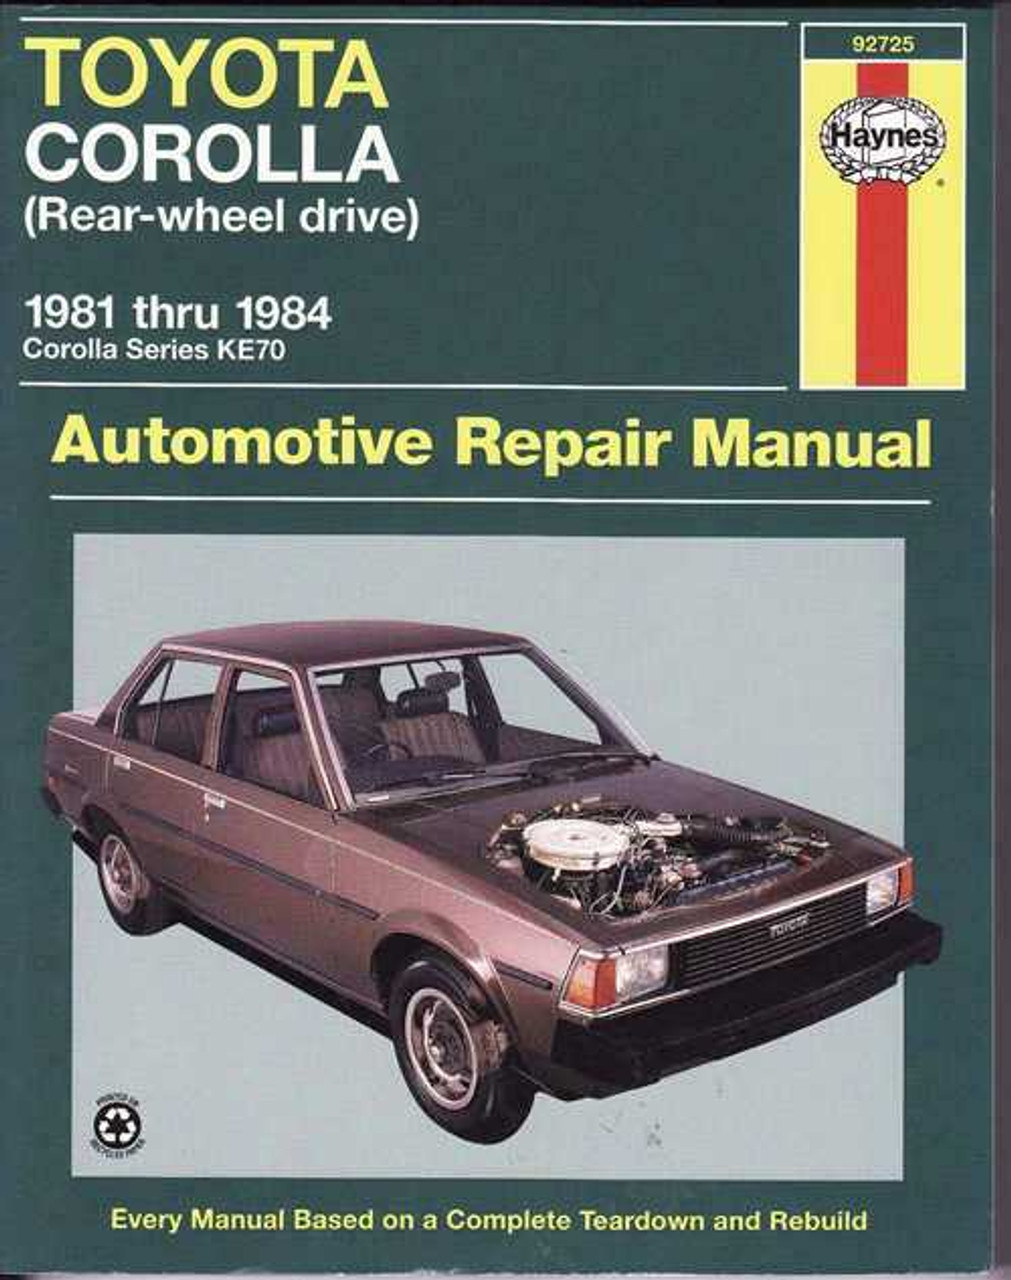 1986 toyota corolla workshop manual best setting instruction guide u2022 rh ourk9 co 1986 toyota corolla manual steering rack 1987 Corolla